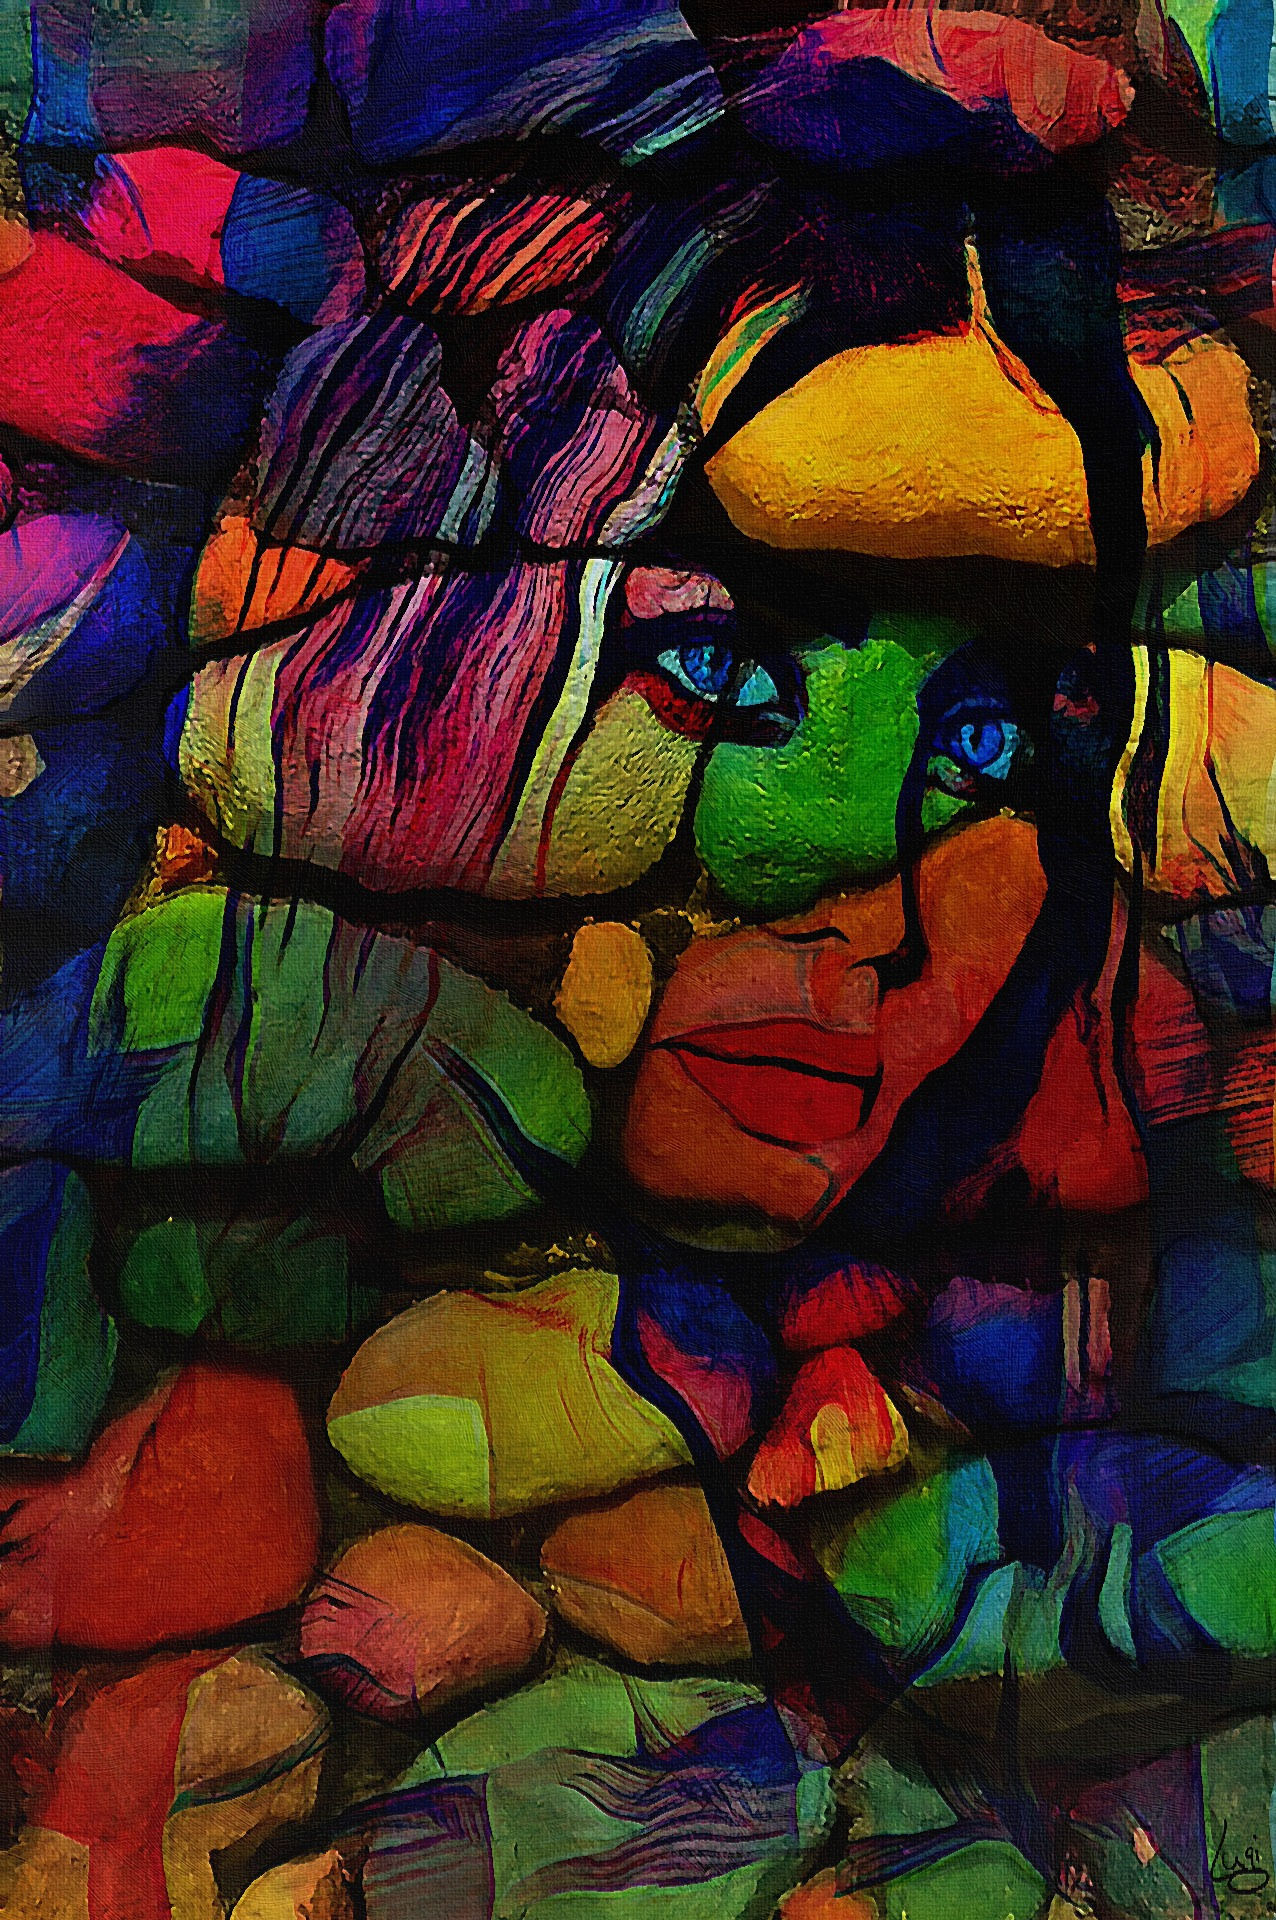 stone-wall-5432657_LuGiAbSt_DAP__Picasso_Abstract_V5.jpg